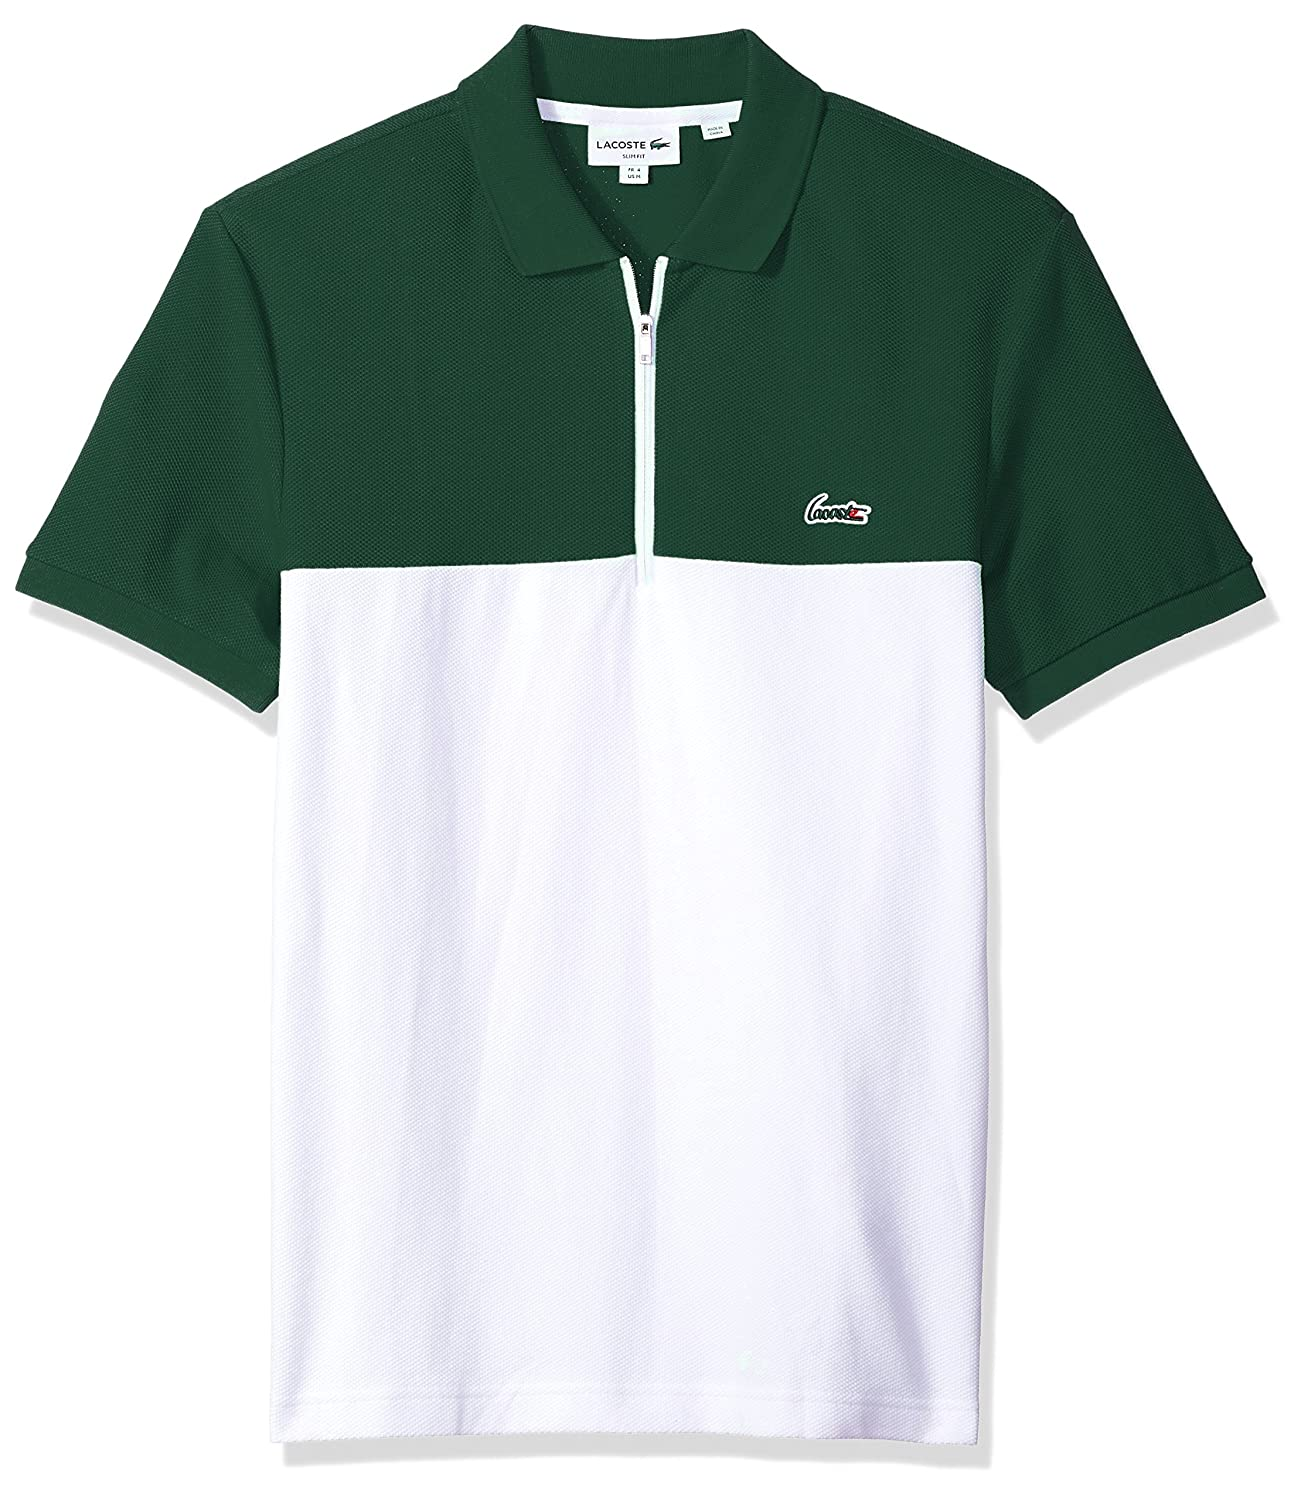 51ea7839 Sports Direct Lacoste Polo Shirts | Top Mode Depot